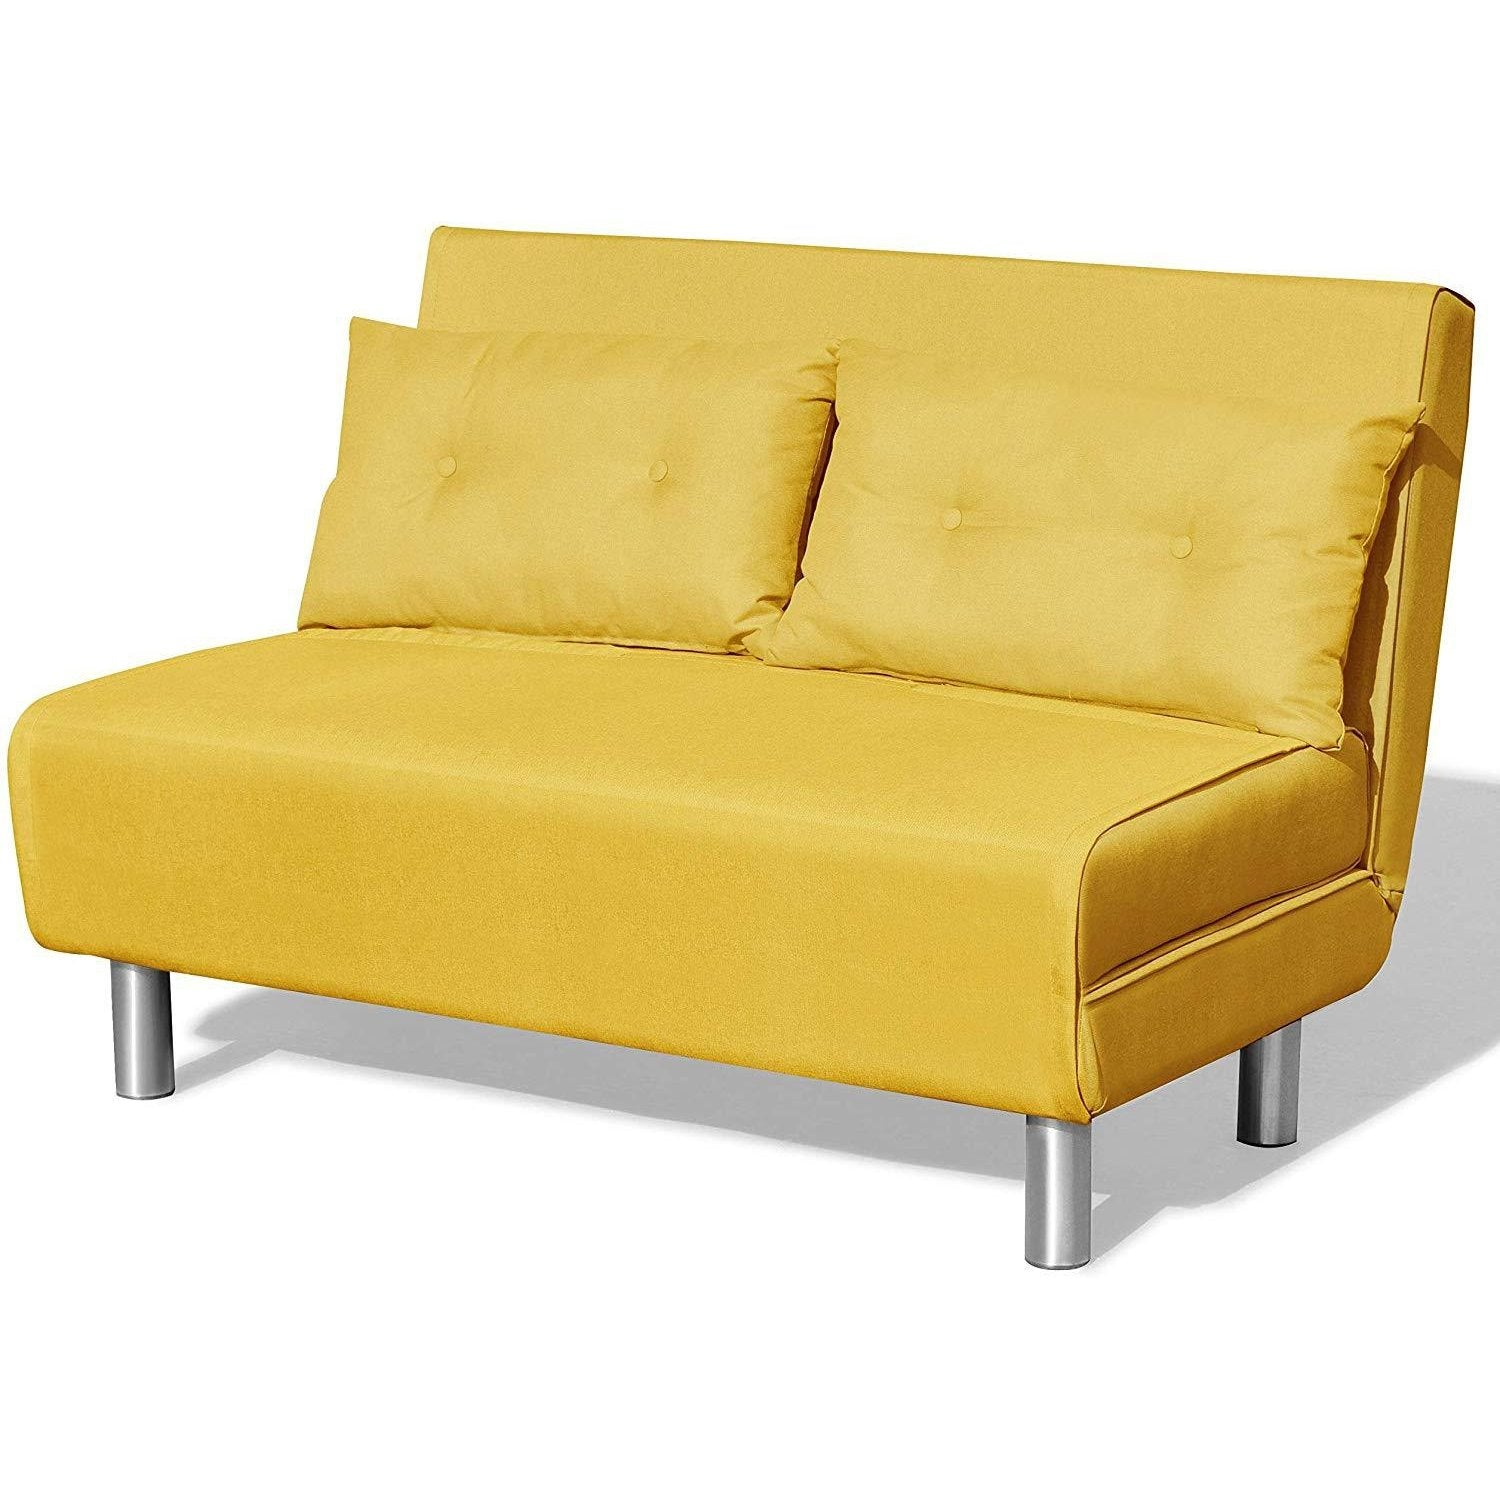 ALGO 2-Seater Small Double Folding Sofa Bed with Cushion Bright Yellow Fabric